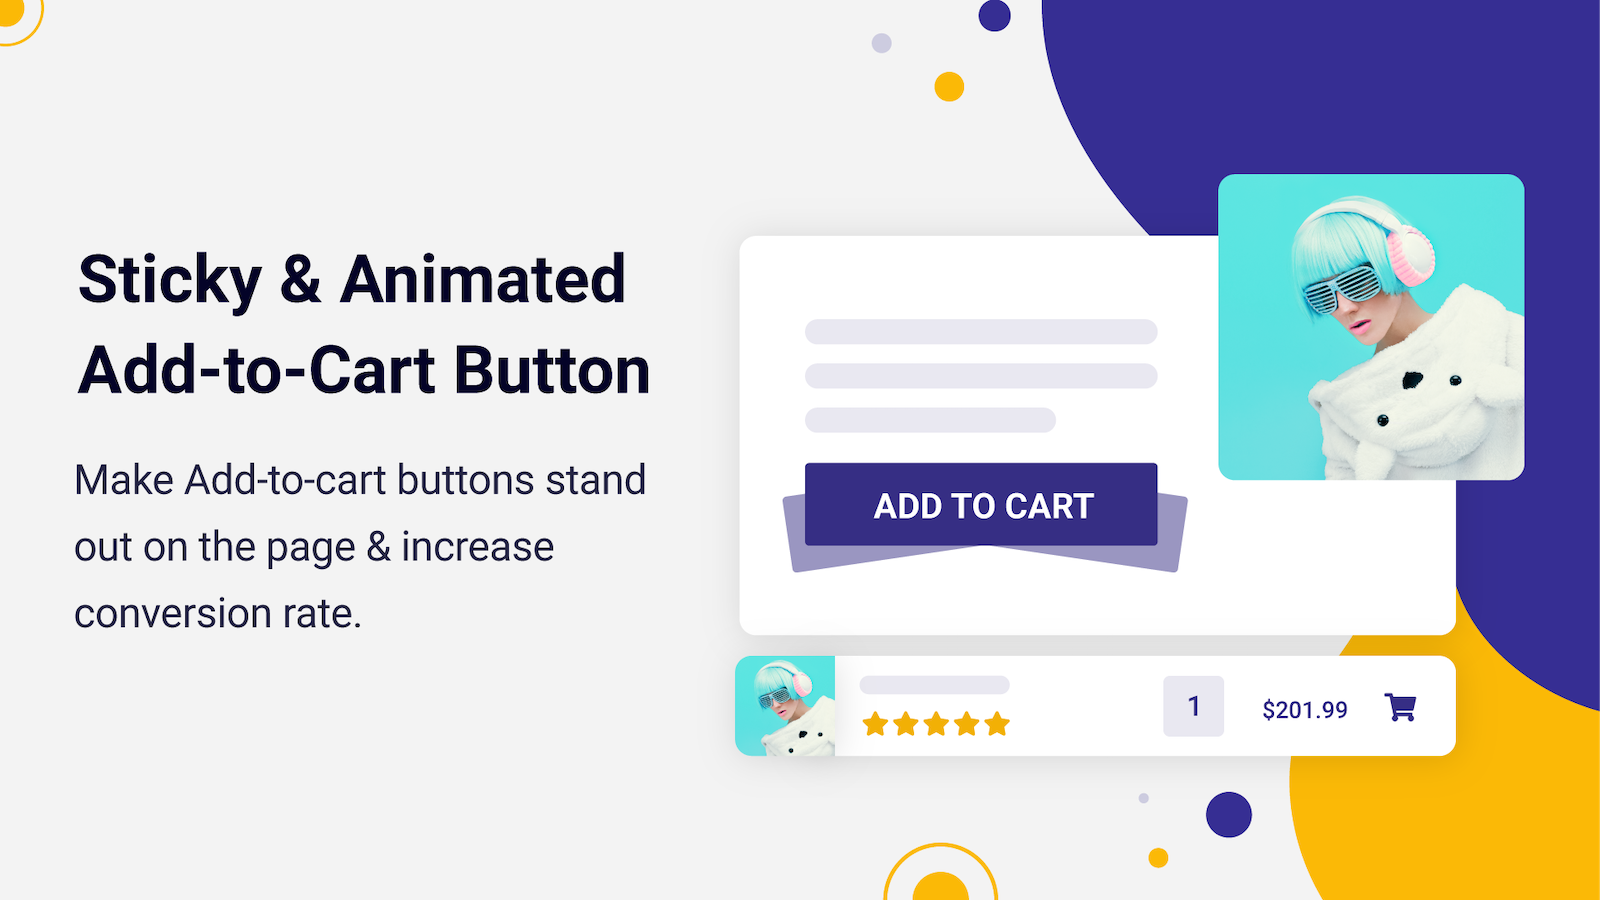 Sticky & Animated Add-to-cart Button